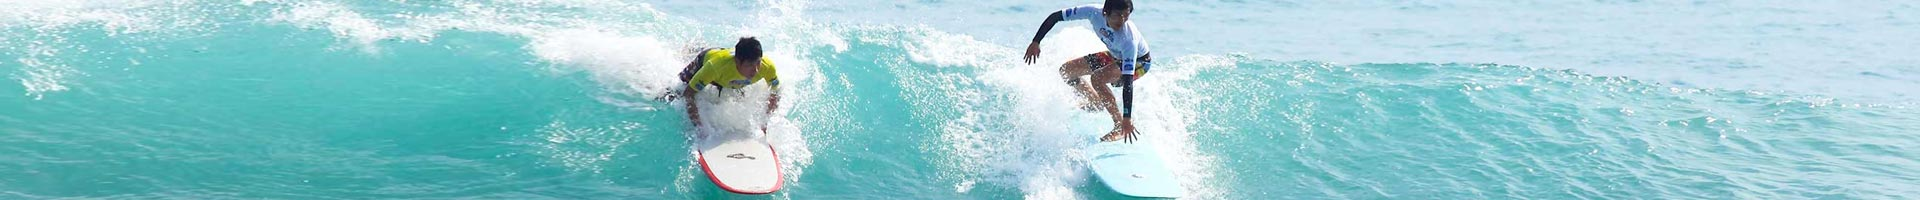 Port Stephens Surf School - Learn to Surf in Paradise